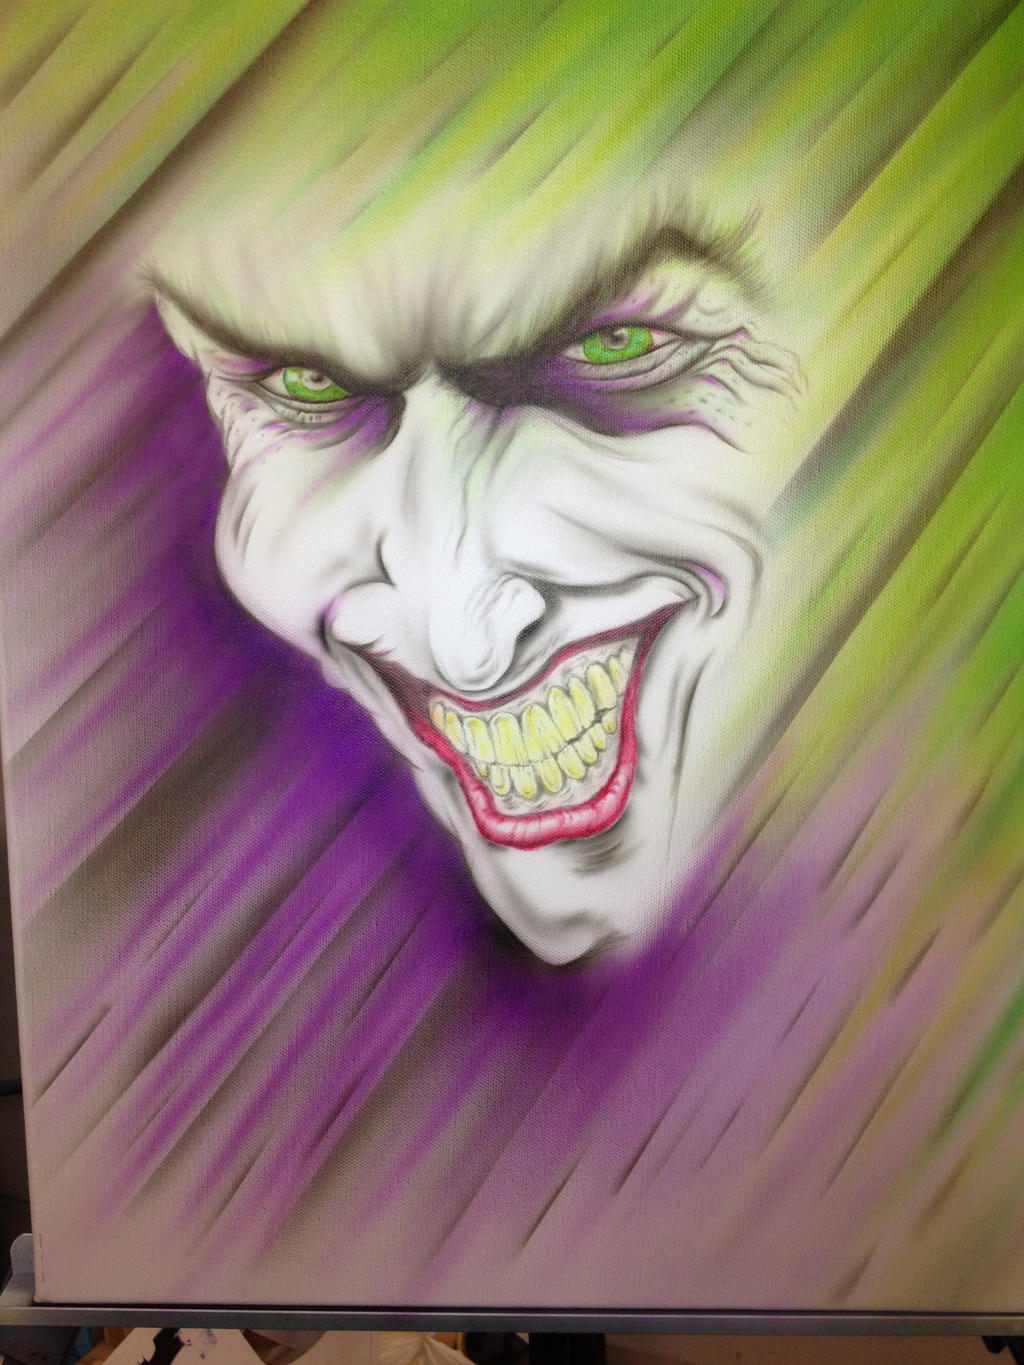 Airbrush Joker Wallpaper: Joker Airbrushed By Dekoart13 On DeviantART